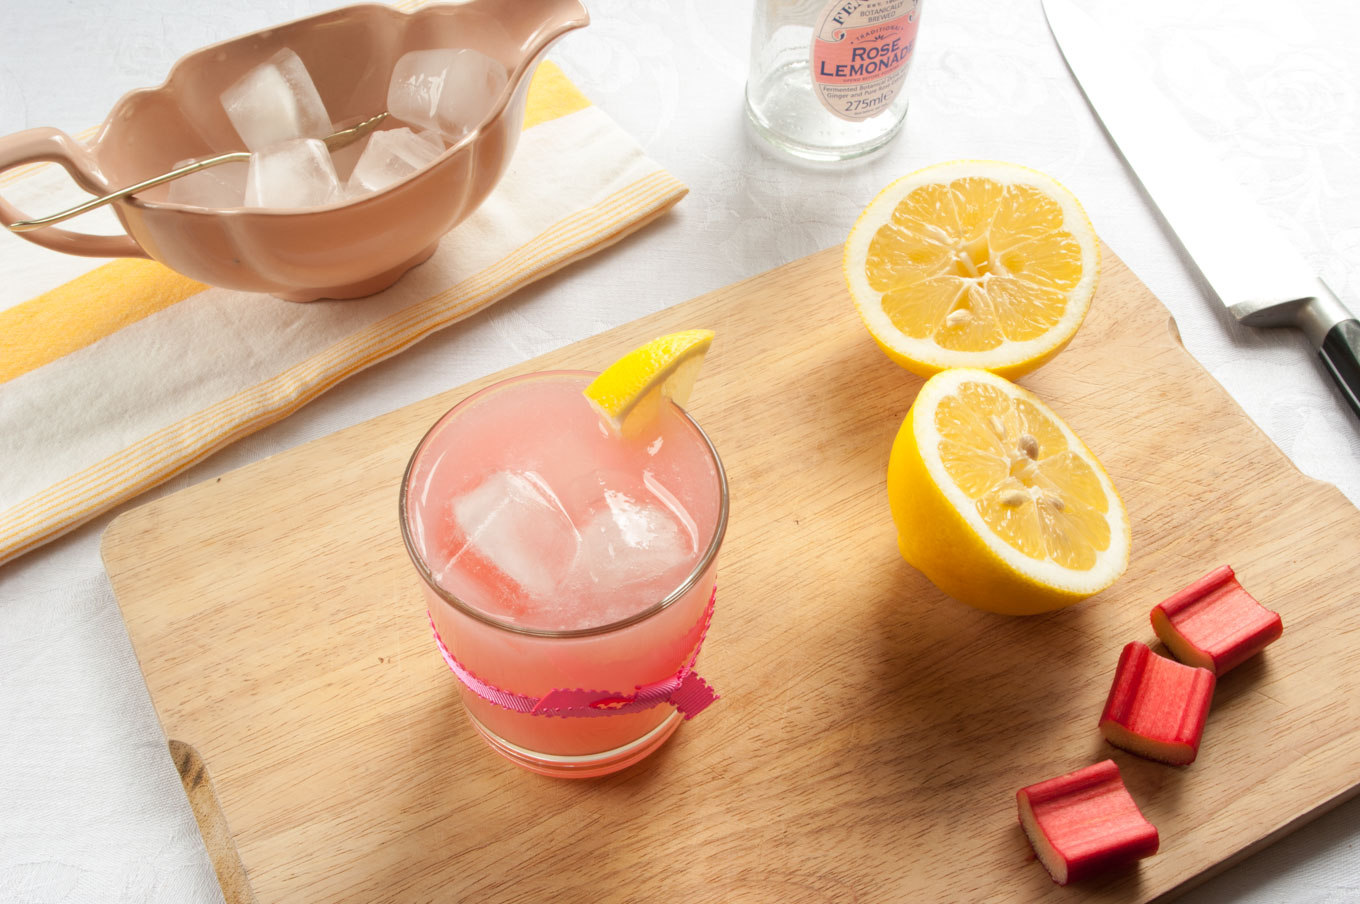 Rhubarb Cocktail with Lemon and Rose – A tart, fruity, lightly sweet cocktail recipe, with puréed pink rhubarb, rose lemonade and fresh lemon juice. A bright, colourful winter/spring cocktail. By @deliciouscratch | deliciousfromscratch.com